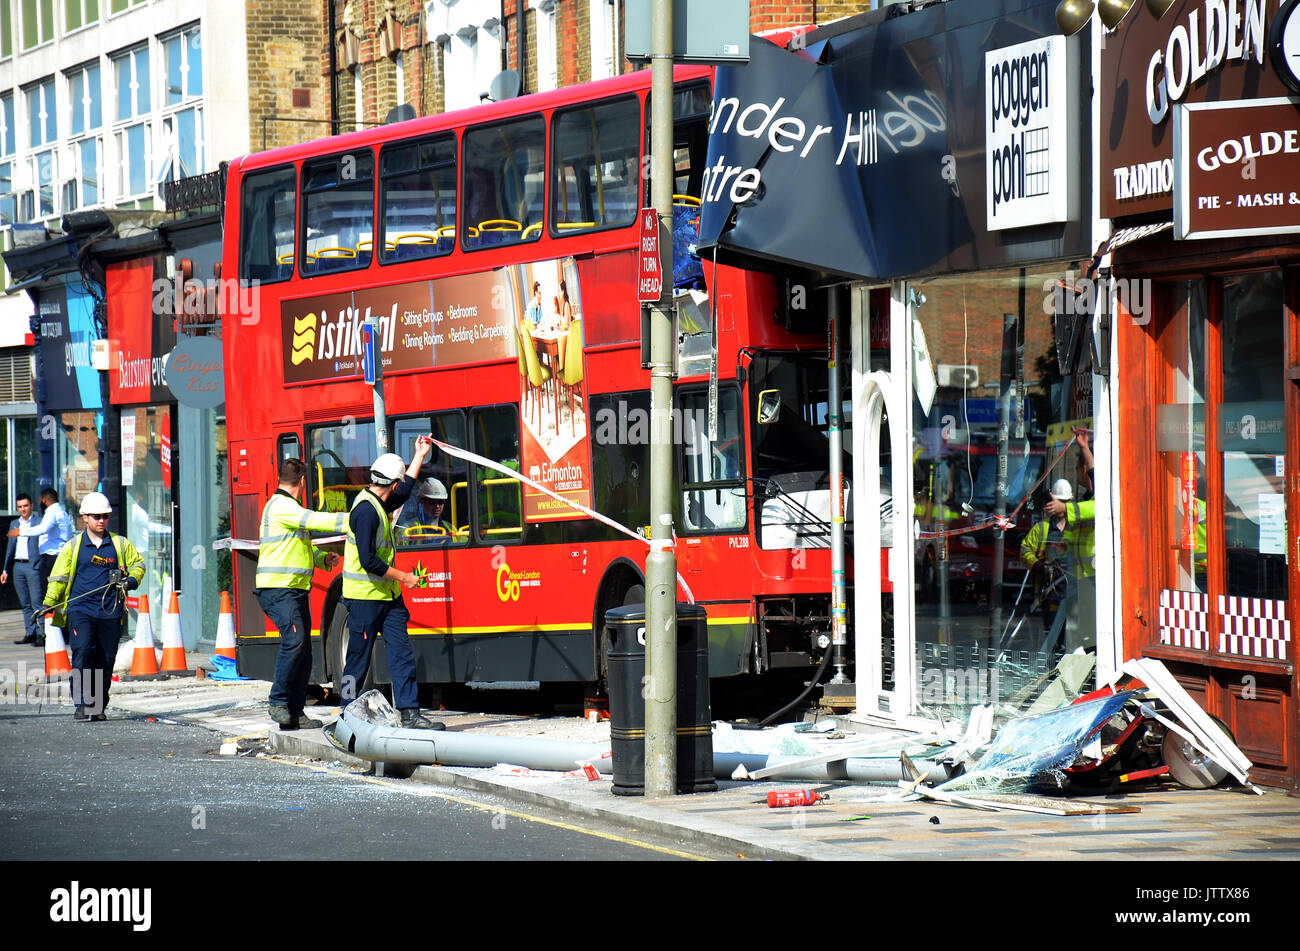 London, UK, Battersea 10/08/2017 Bus crashes into Poggen Pohl ...